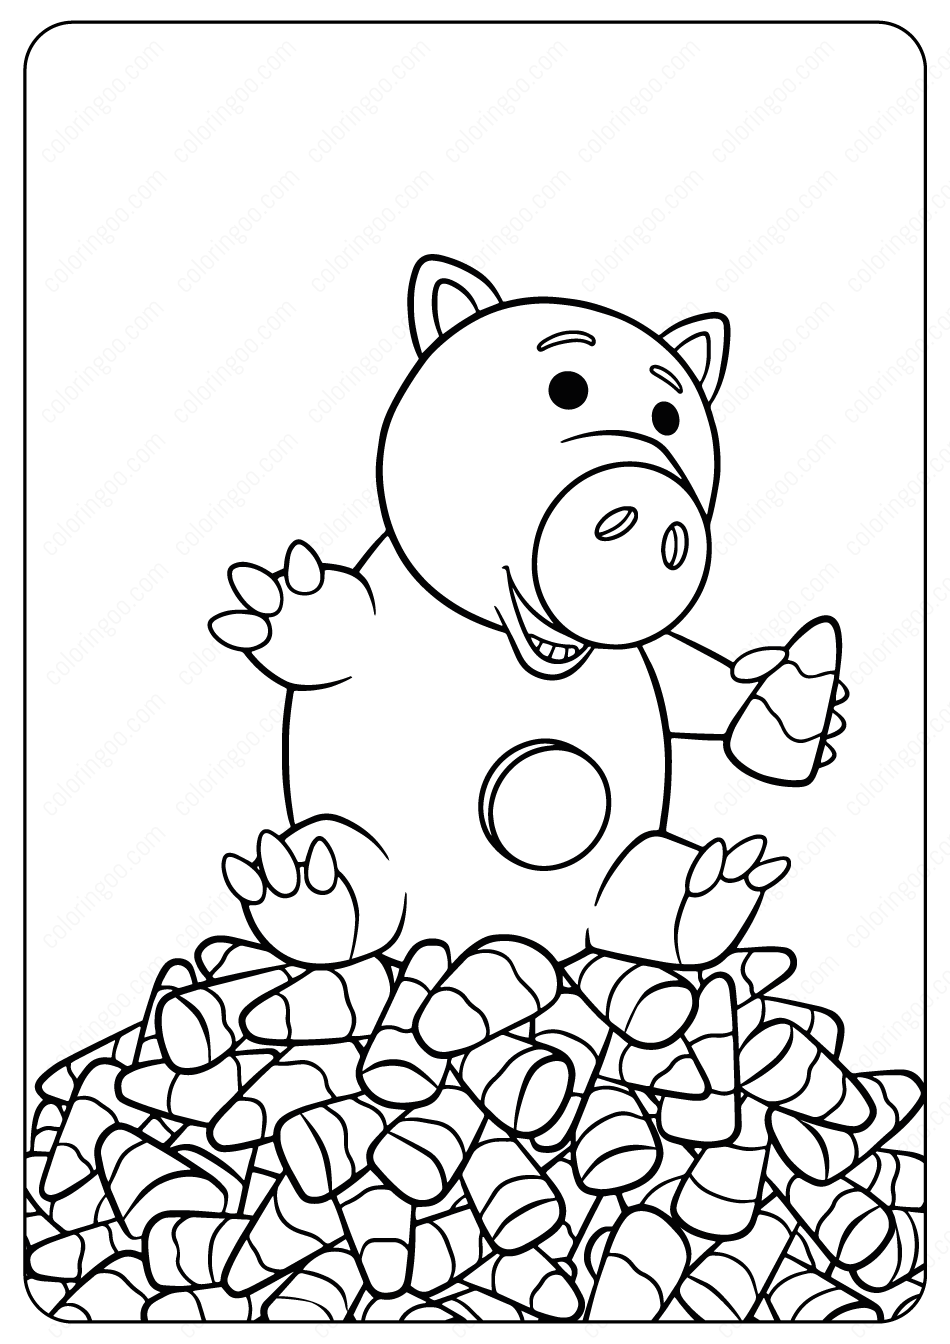 toy story hamm coloring page disney toy story hamm halloween coloring pages story coloring toy hamm page